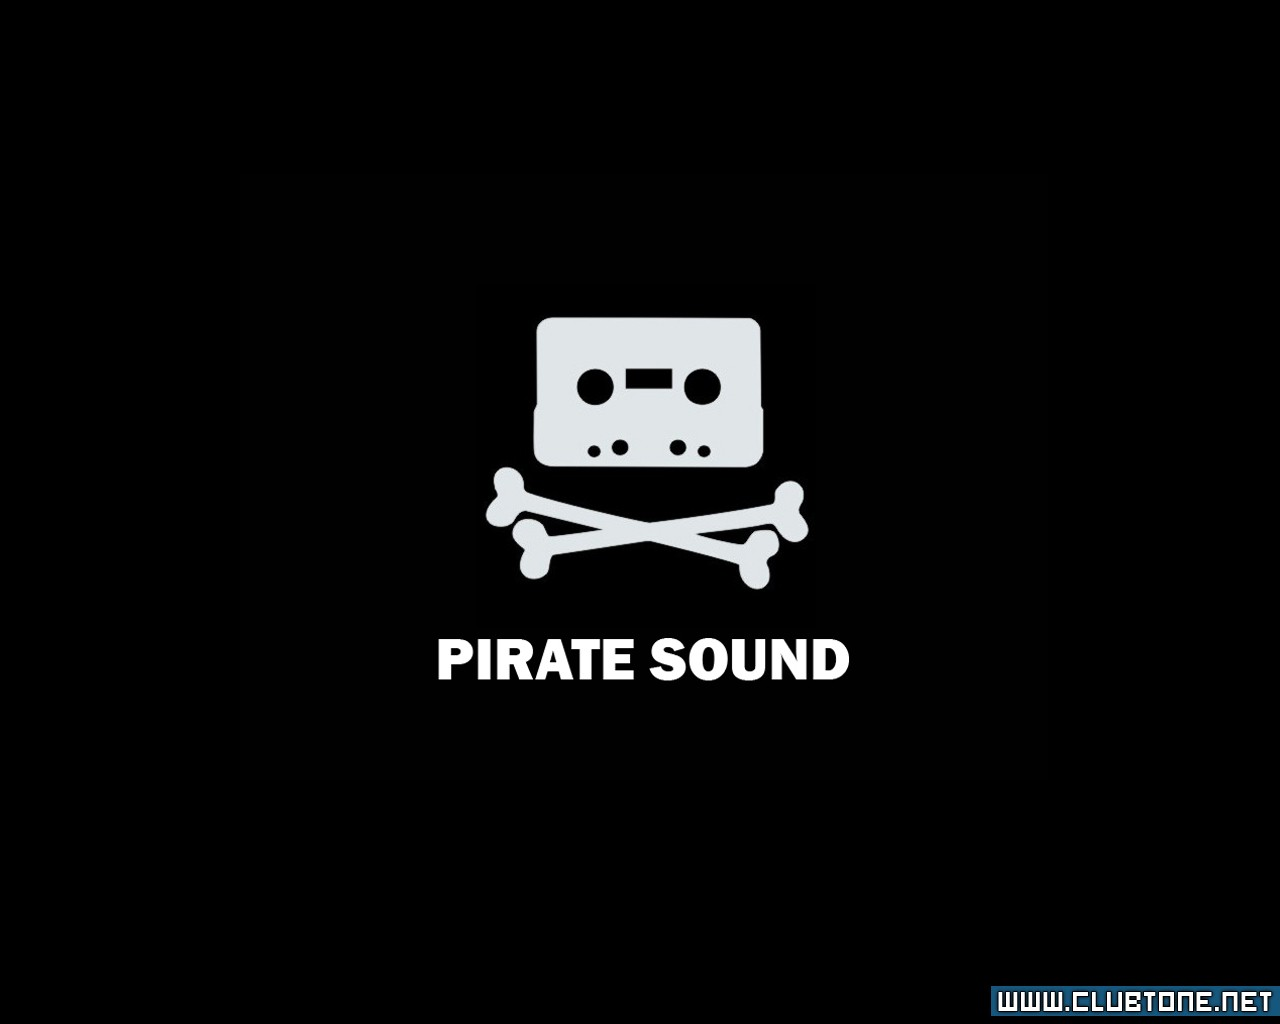 pirate sound